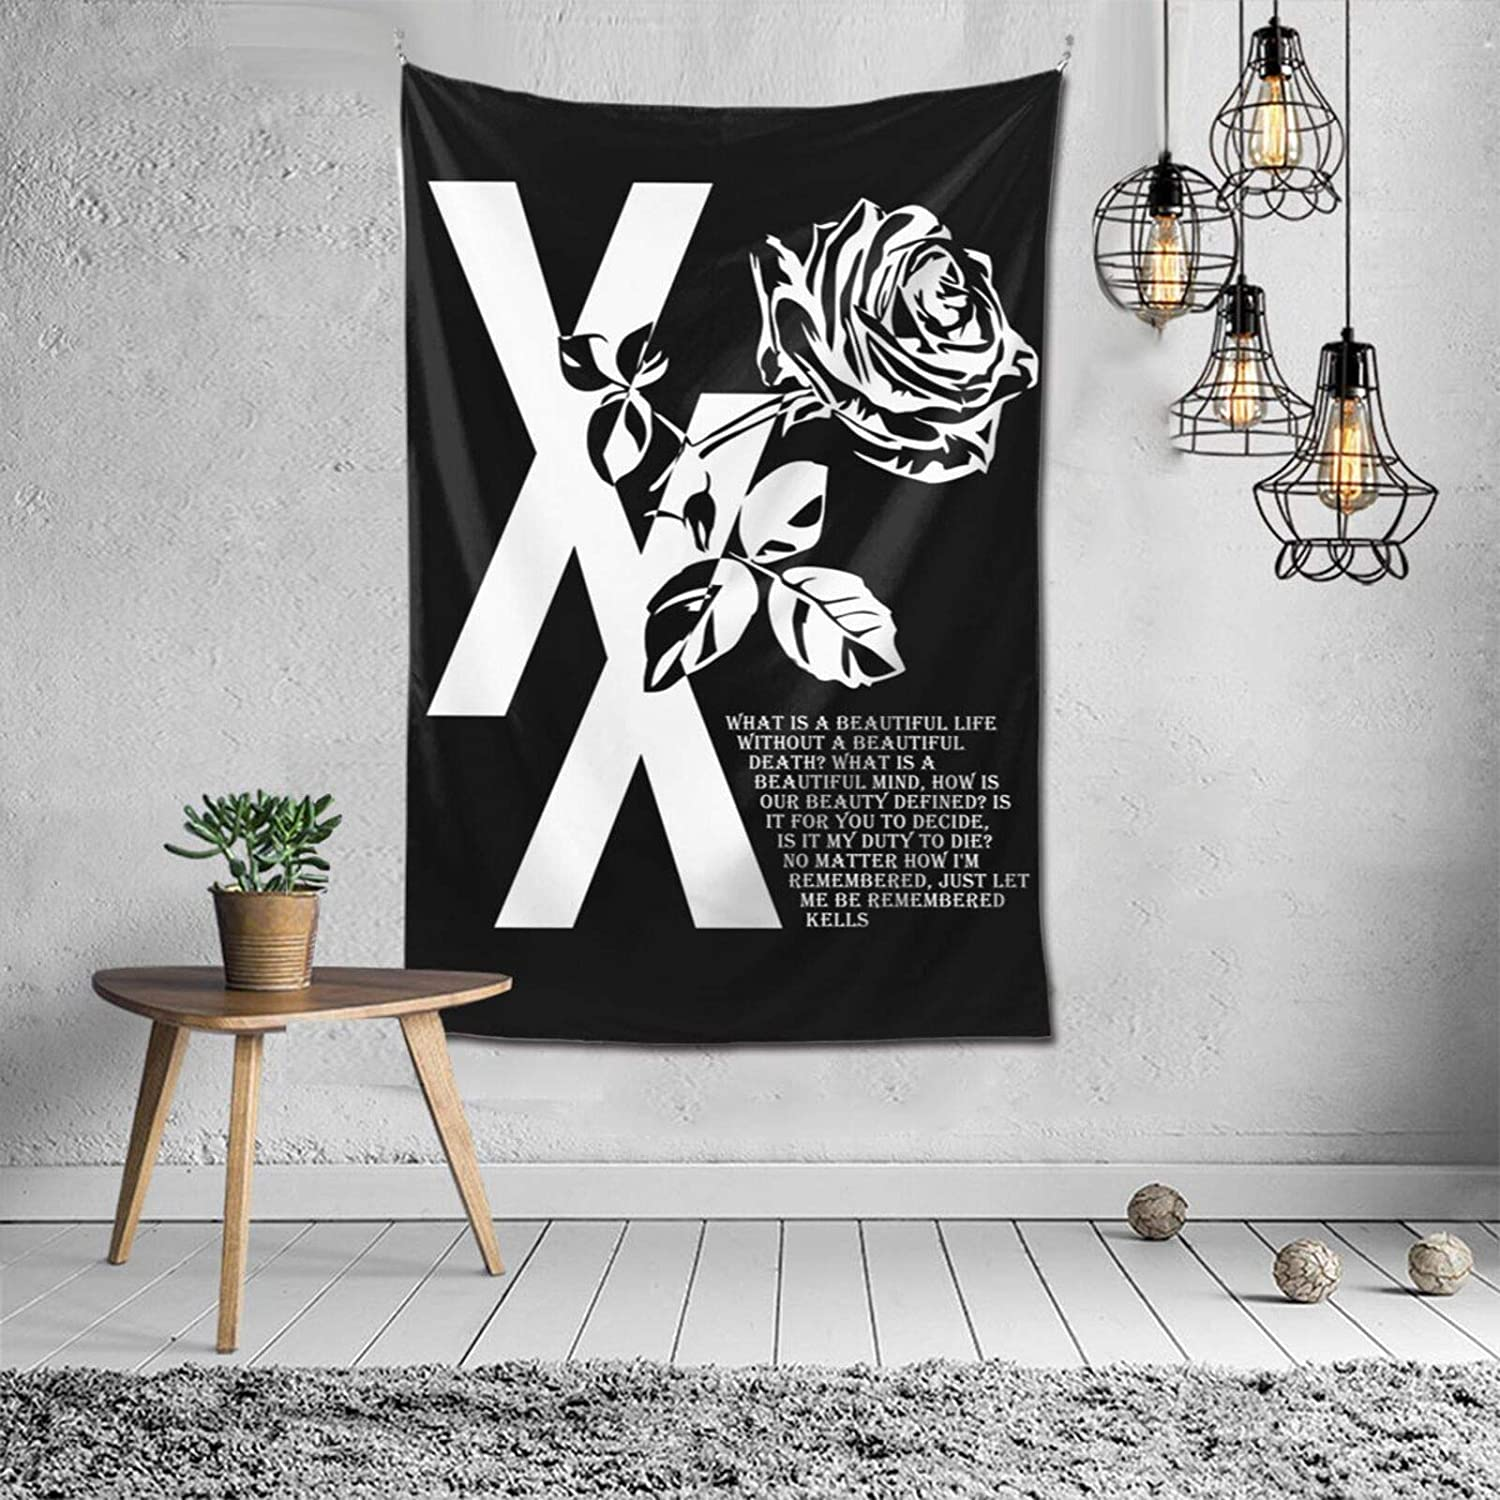 Machine Gu-n Kell-y Tapestry MG-K Wall Hanging Tapestries for Bedroom Living Room Dorm Outdoor Decoration 60x40 Inch